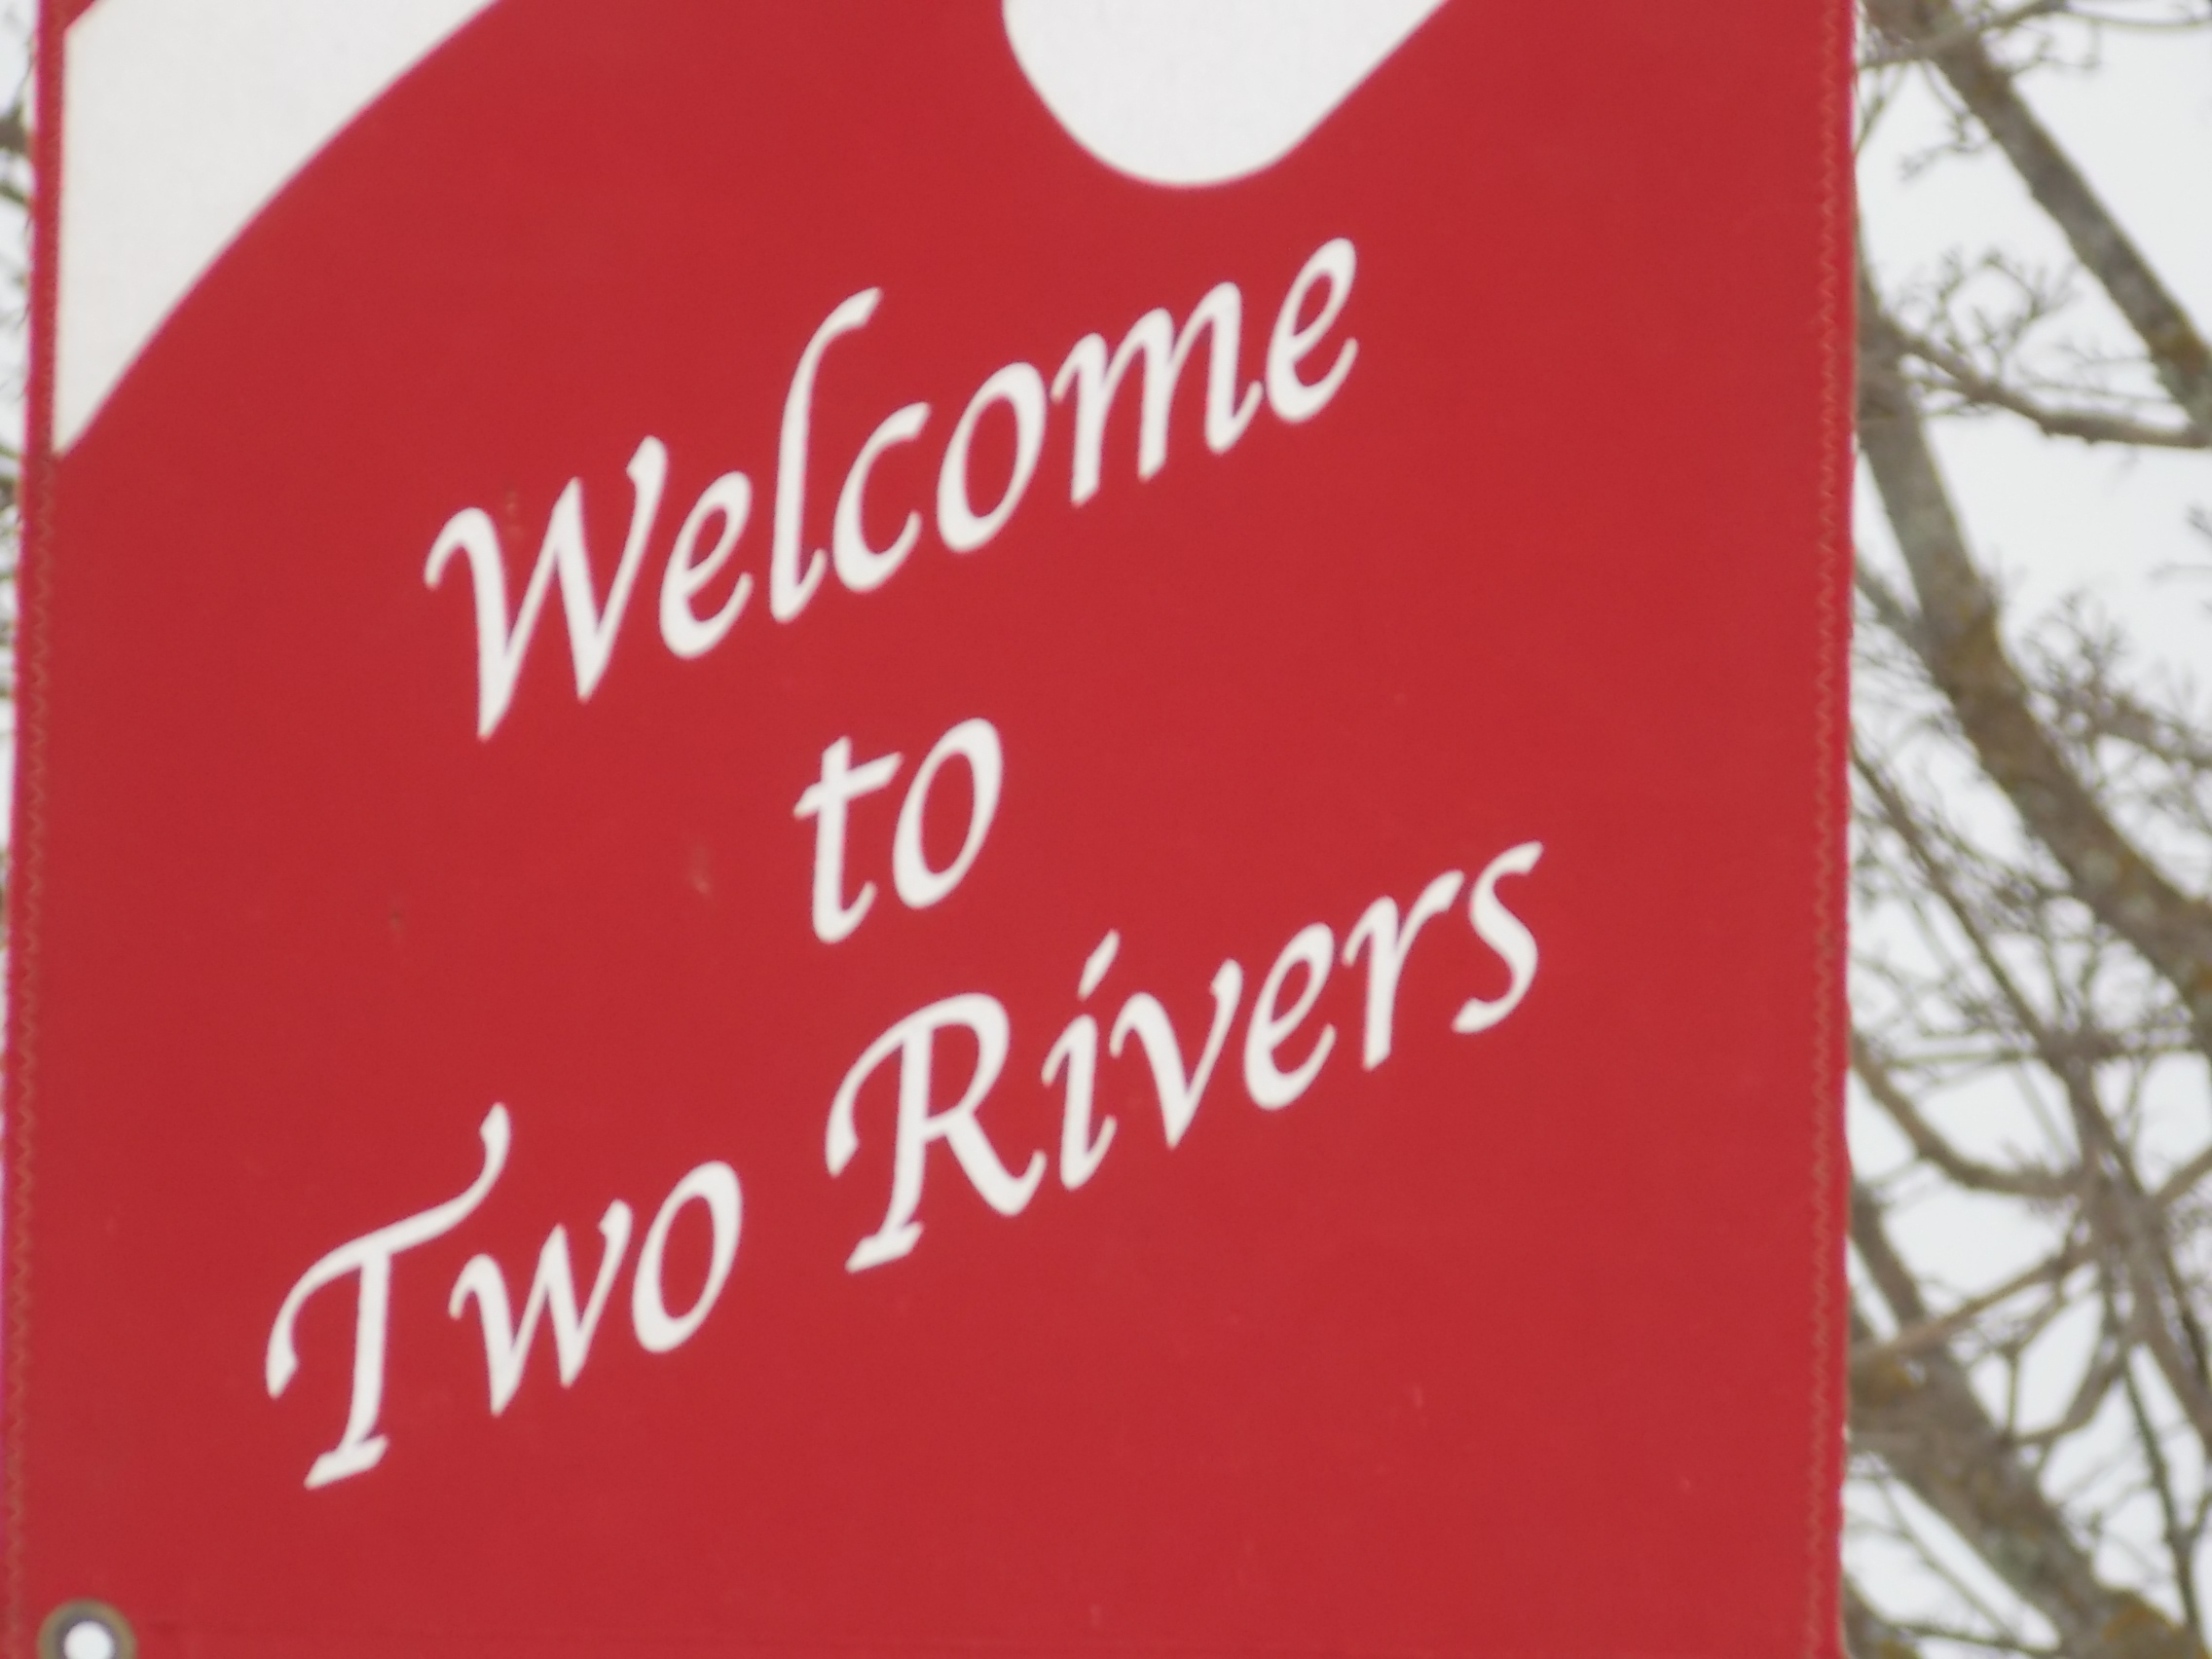 Wells Fargo's Two Rivers Branch to Close